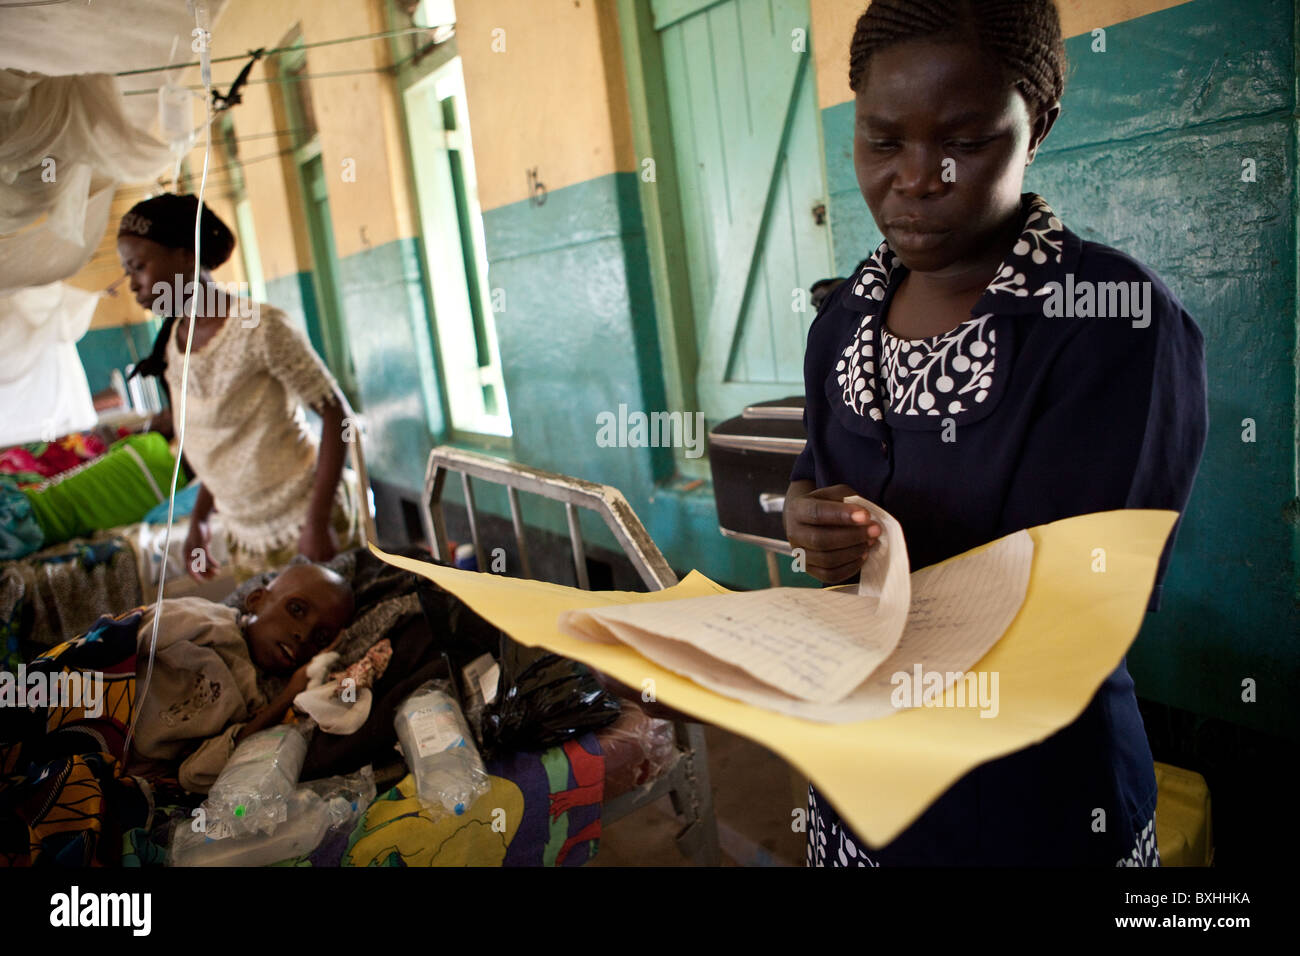 A doctor looks over the records of a child dying of AIDS in a hosptial in Amuria, Uganda, East Africa. - Stock Image